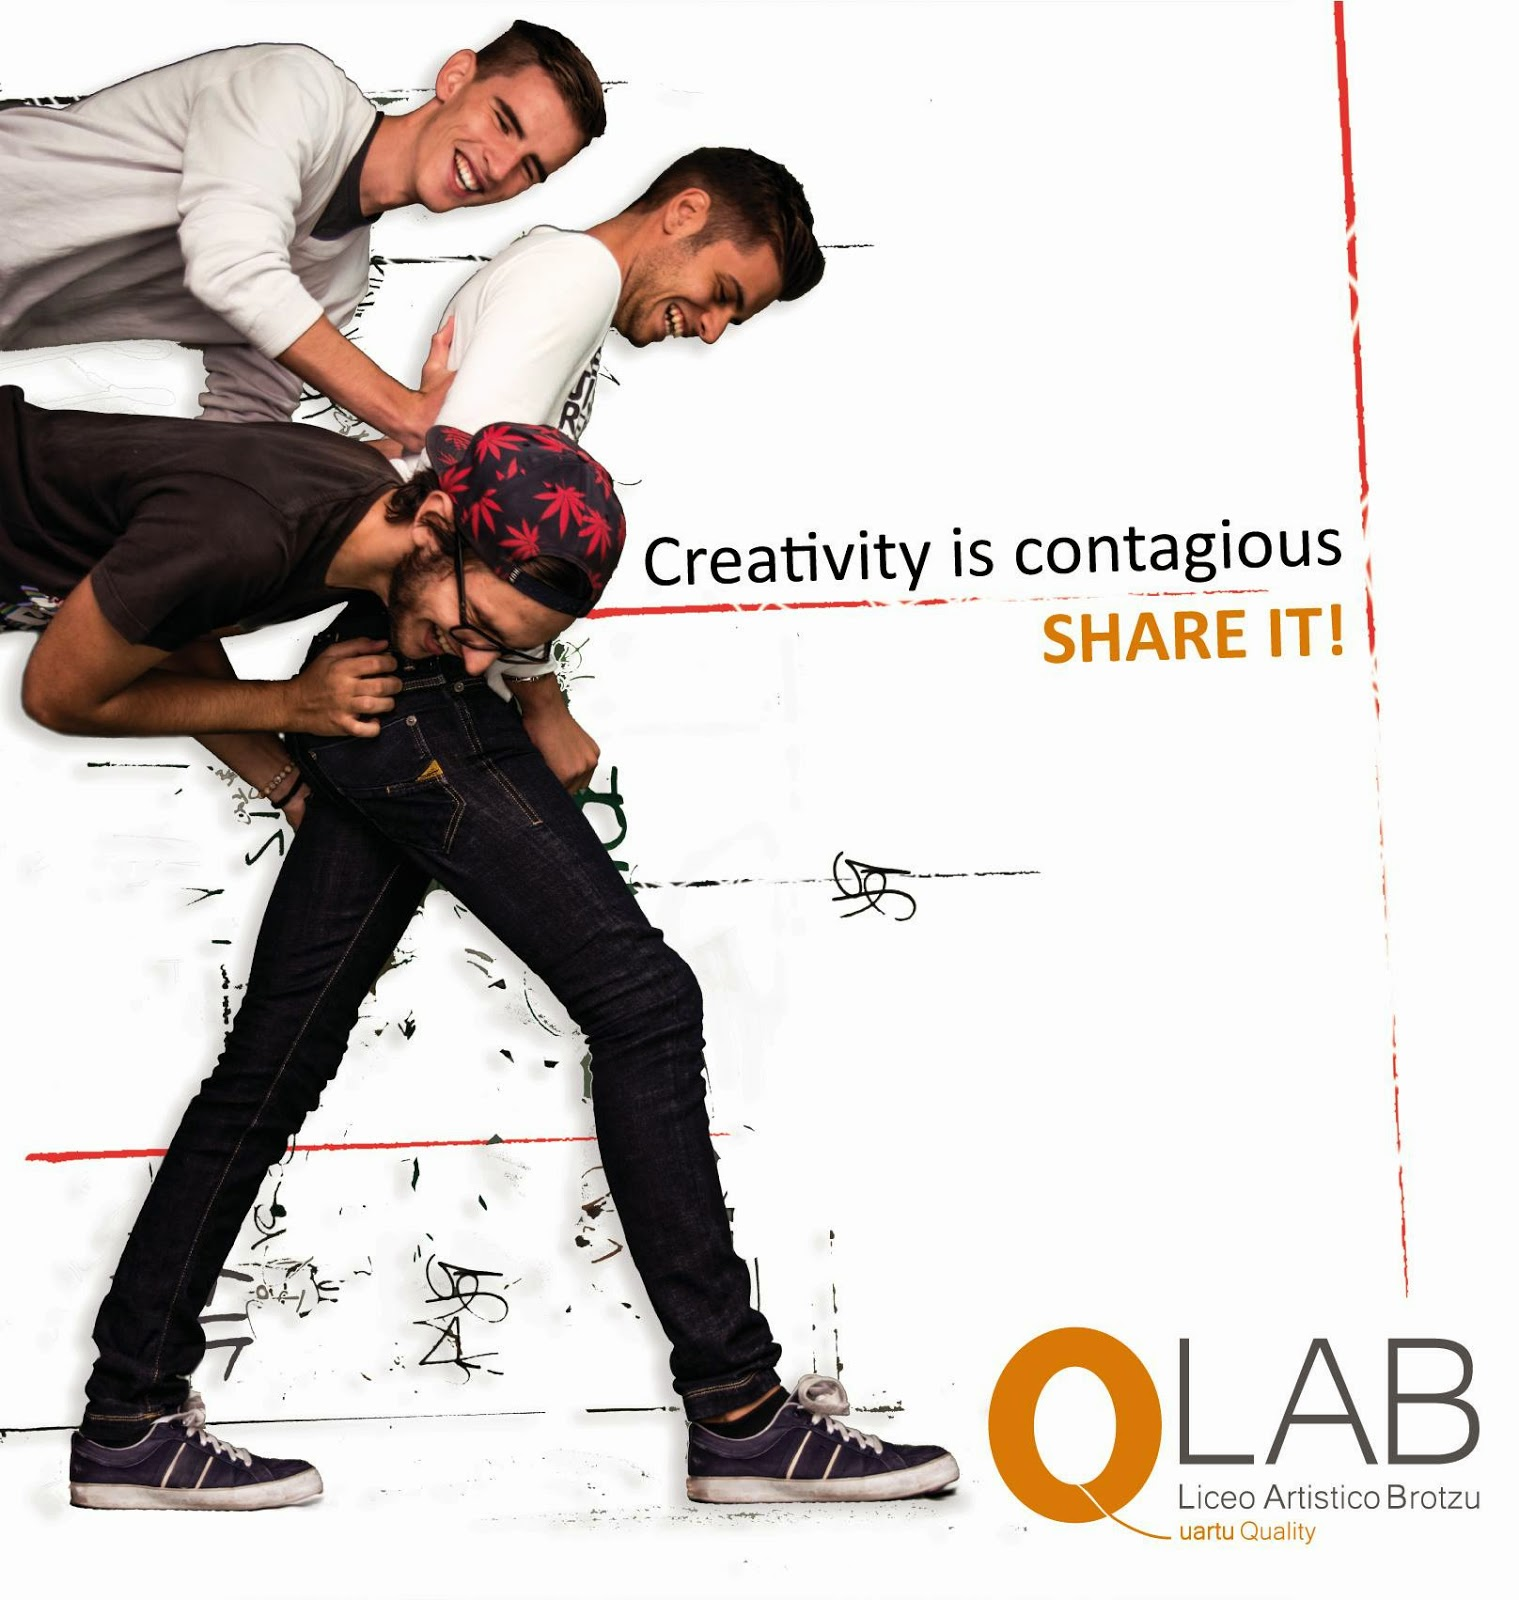 Creativity is contagious # SHARE IT